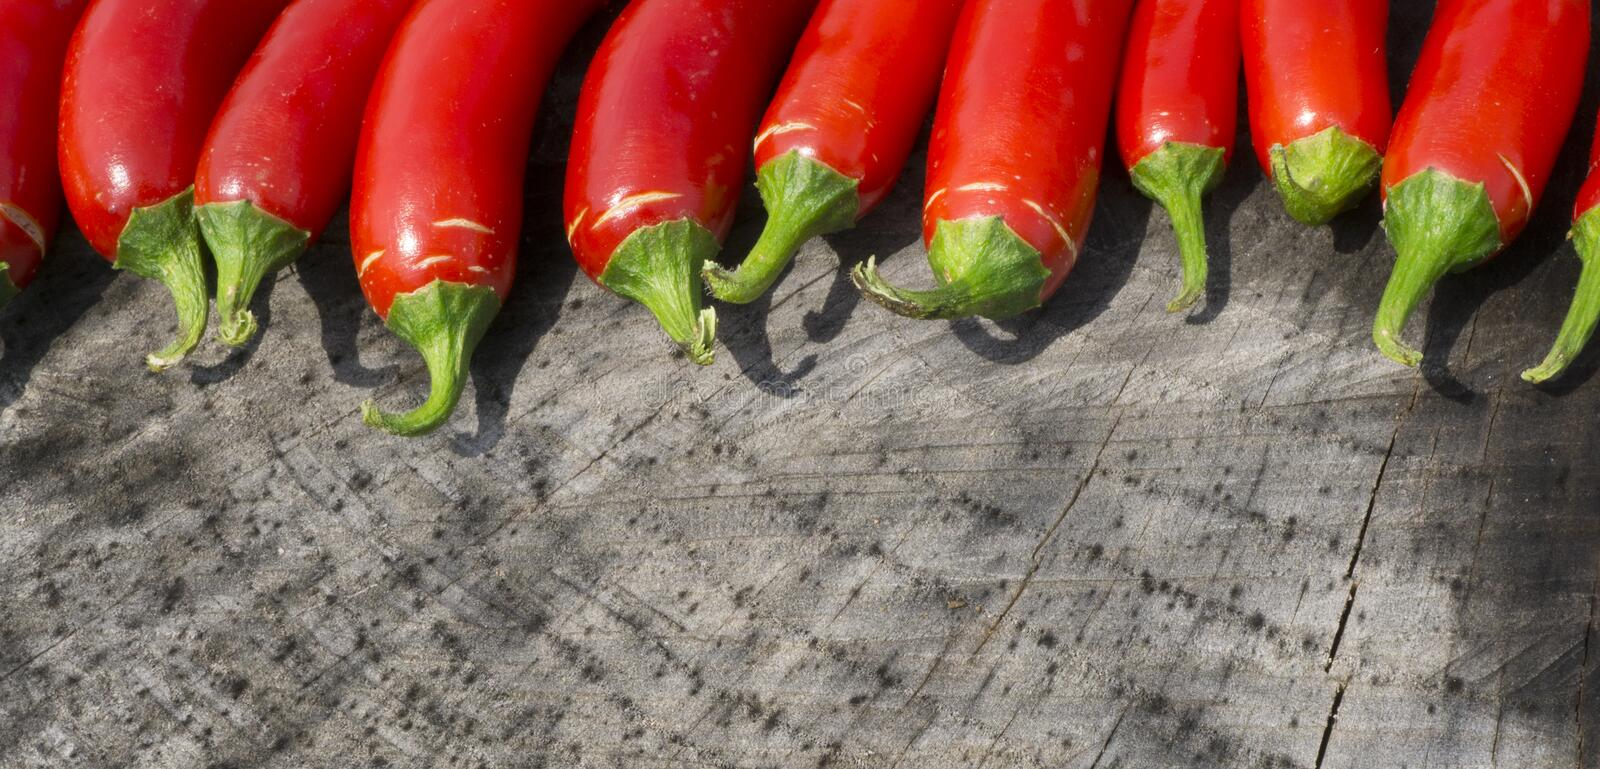 Colorful Panoramic Photo of Red Serrano Peppers. A close up panoramic photo of some bright red Serrano peppers from my garden. I arranged them on a tree stump to royalty free stock images